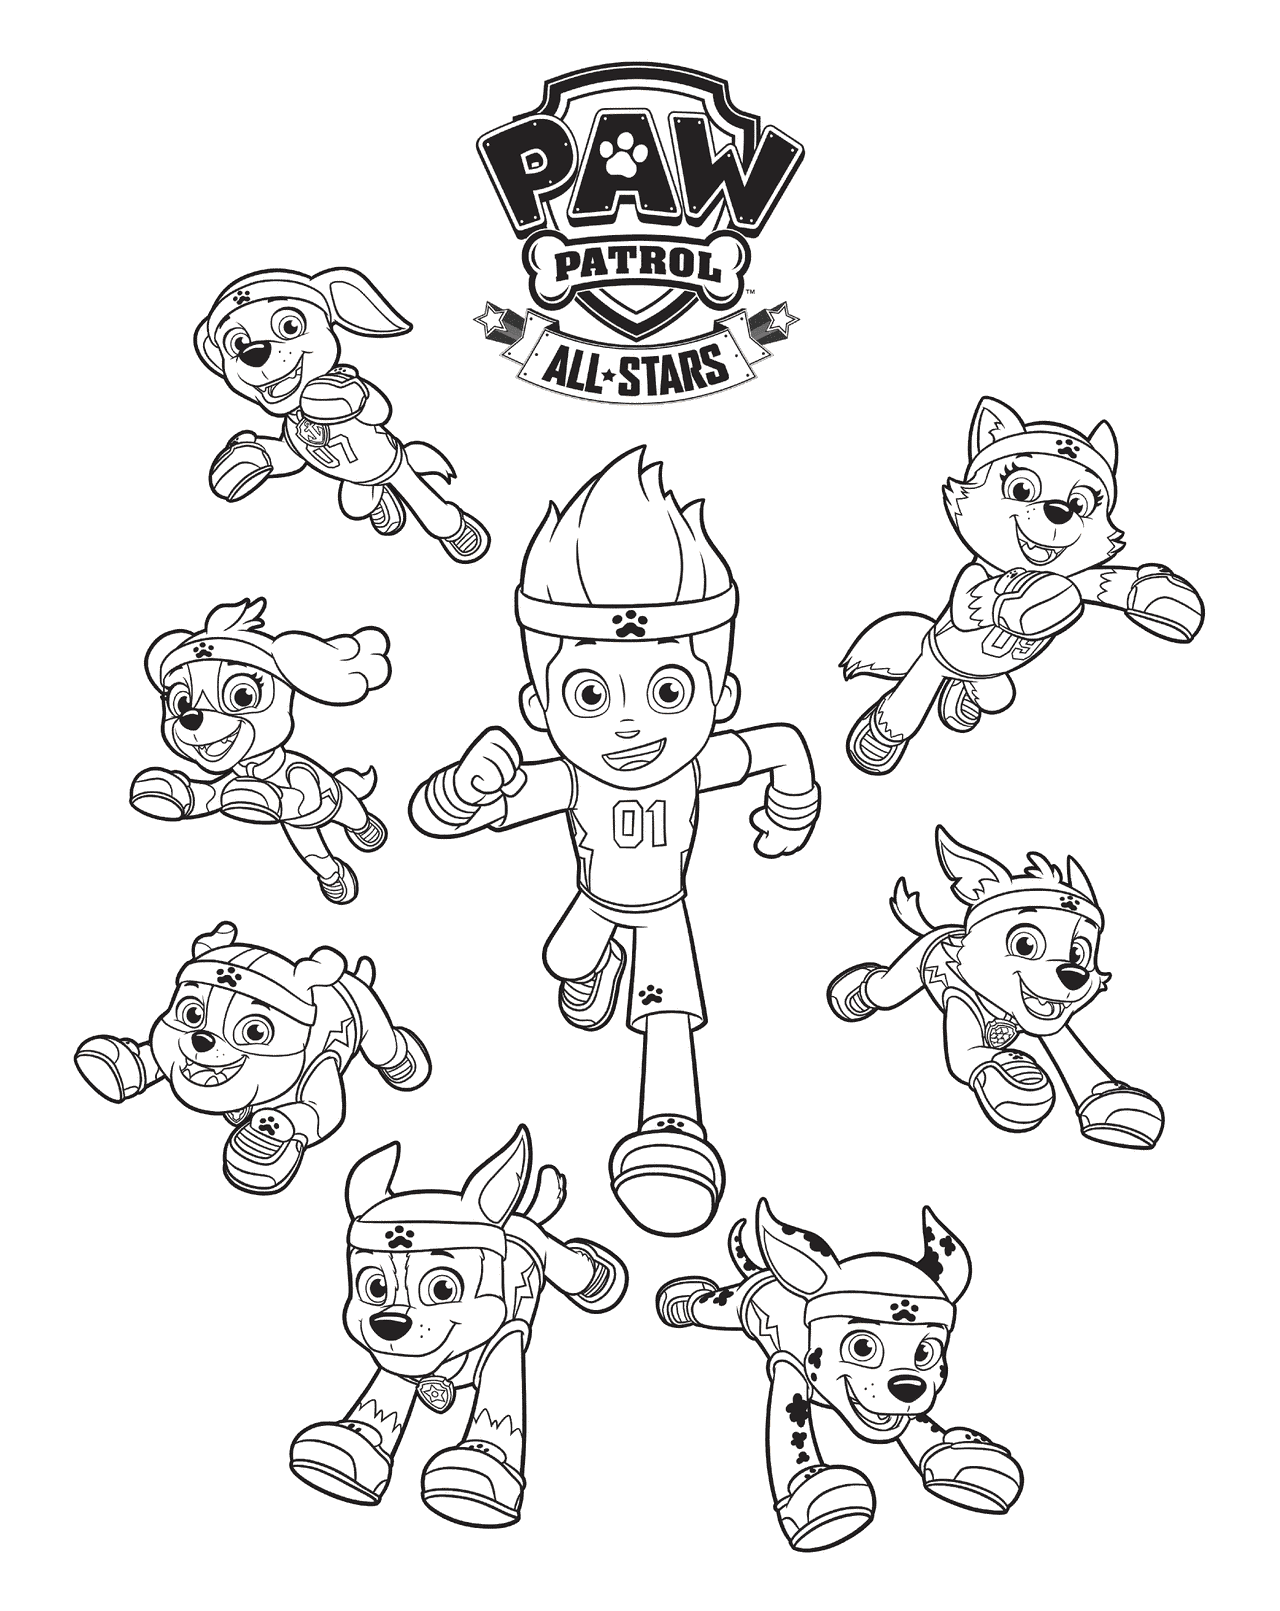 All Stars Paw Patrol Coloring Page Paw Patrol Coloring Pages Paw Patrol Coloring Star Coloring Pages